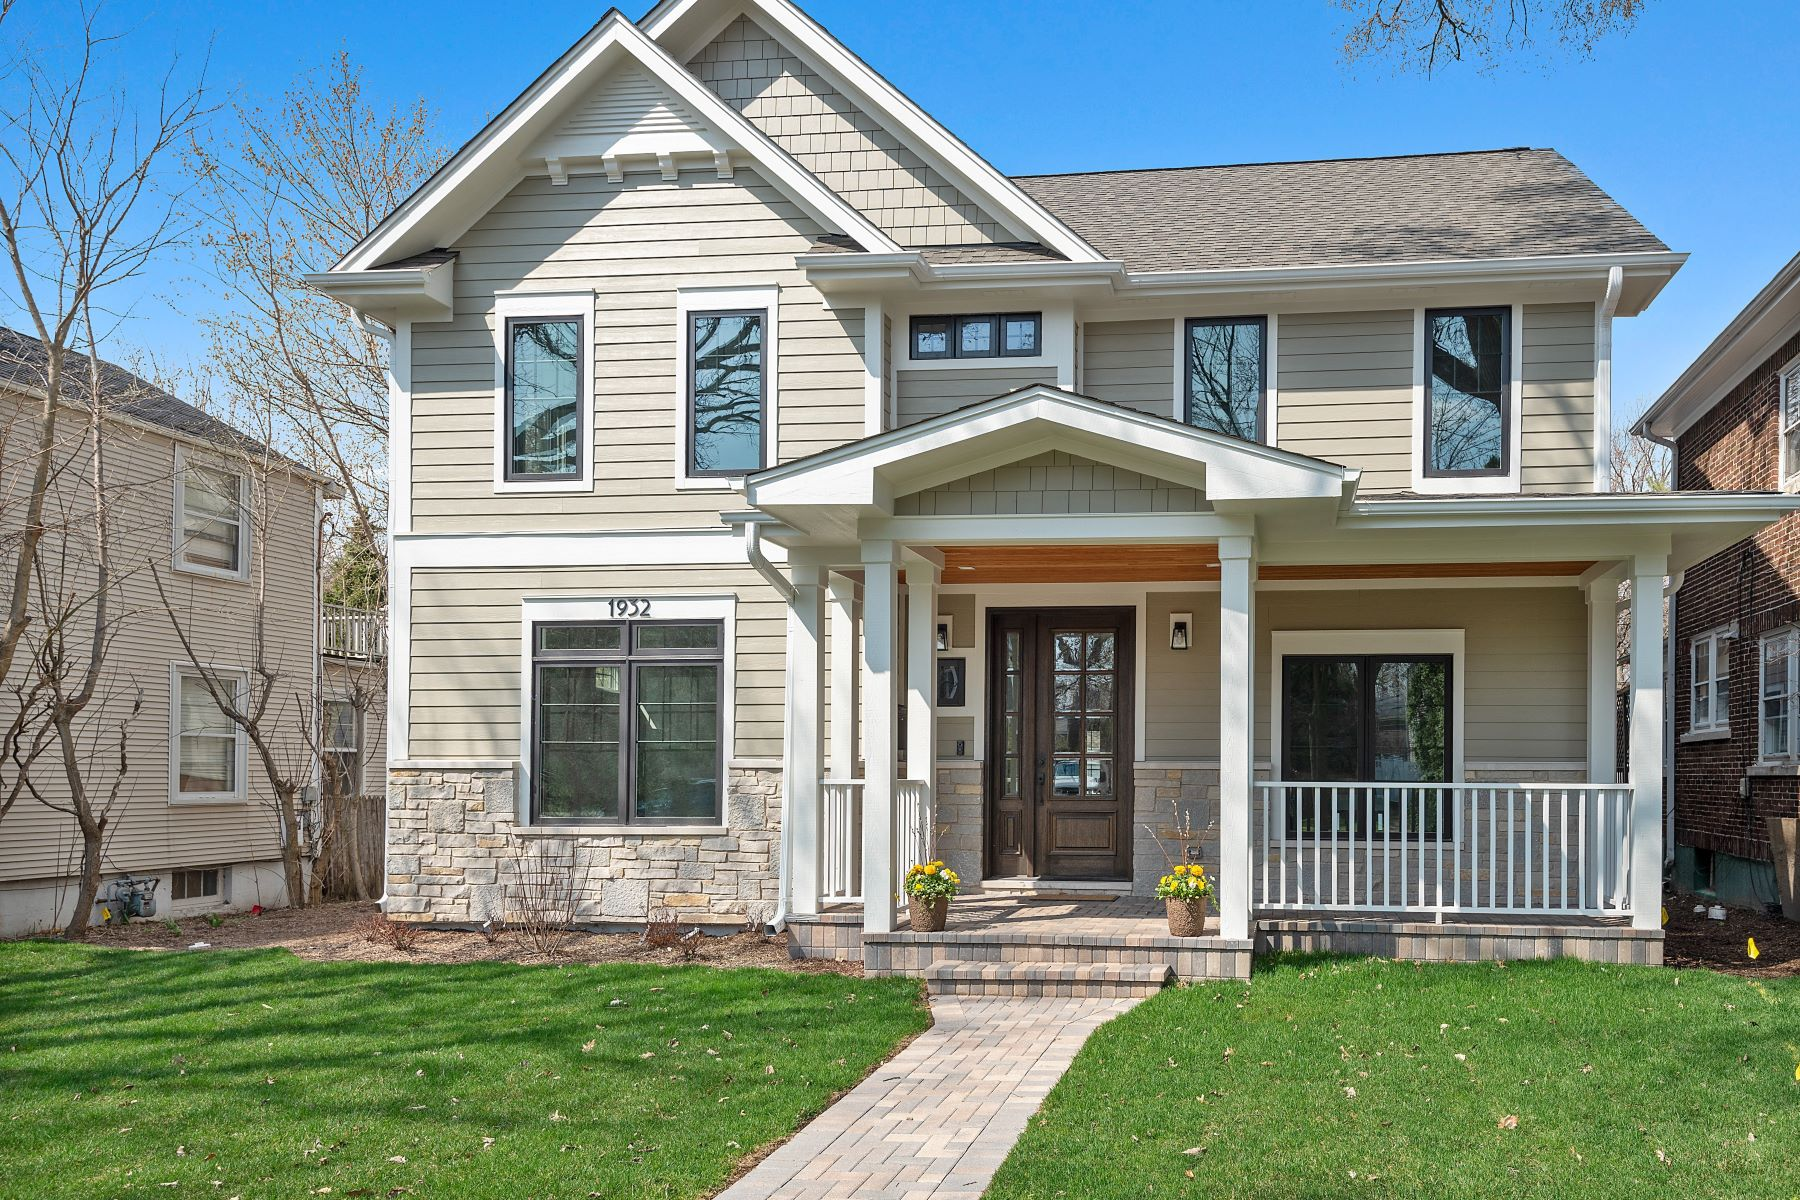 Single Family Home for Active at Luxury Wilmette New Construction 1932 Birchwood Avenue Wilmette, Illinois 60091 United States